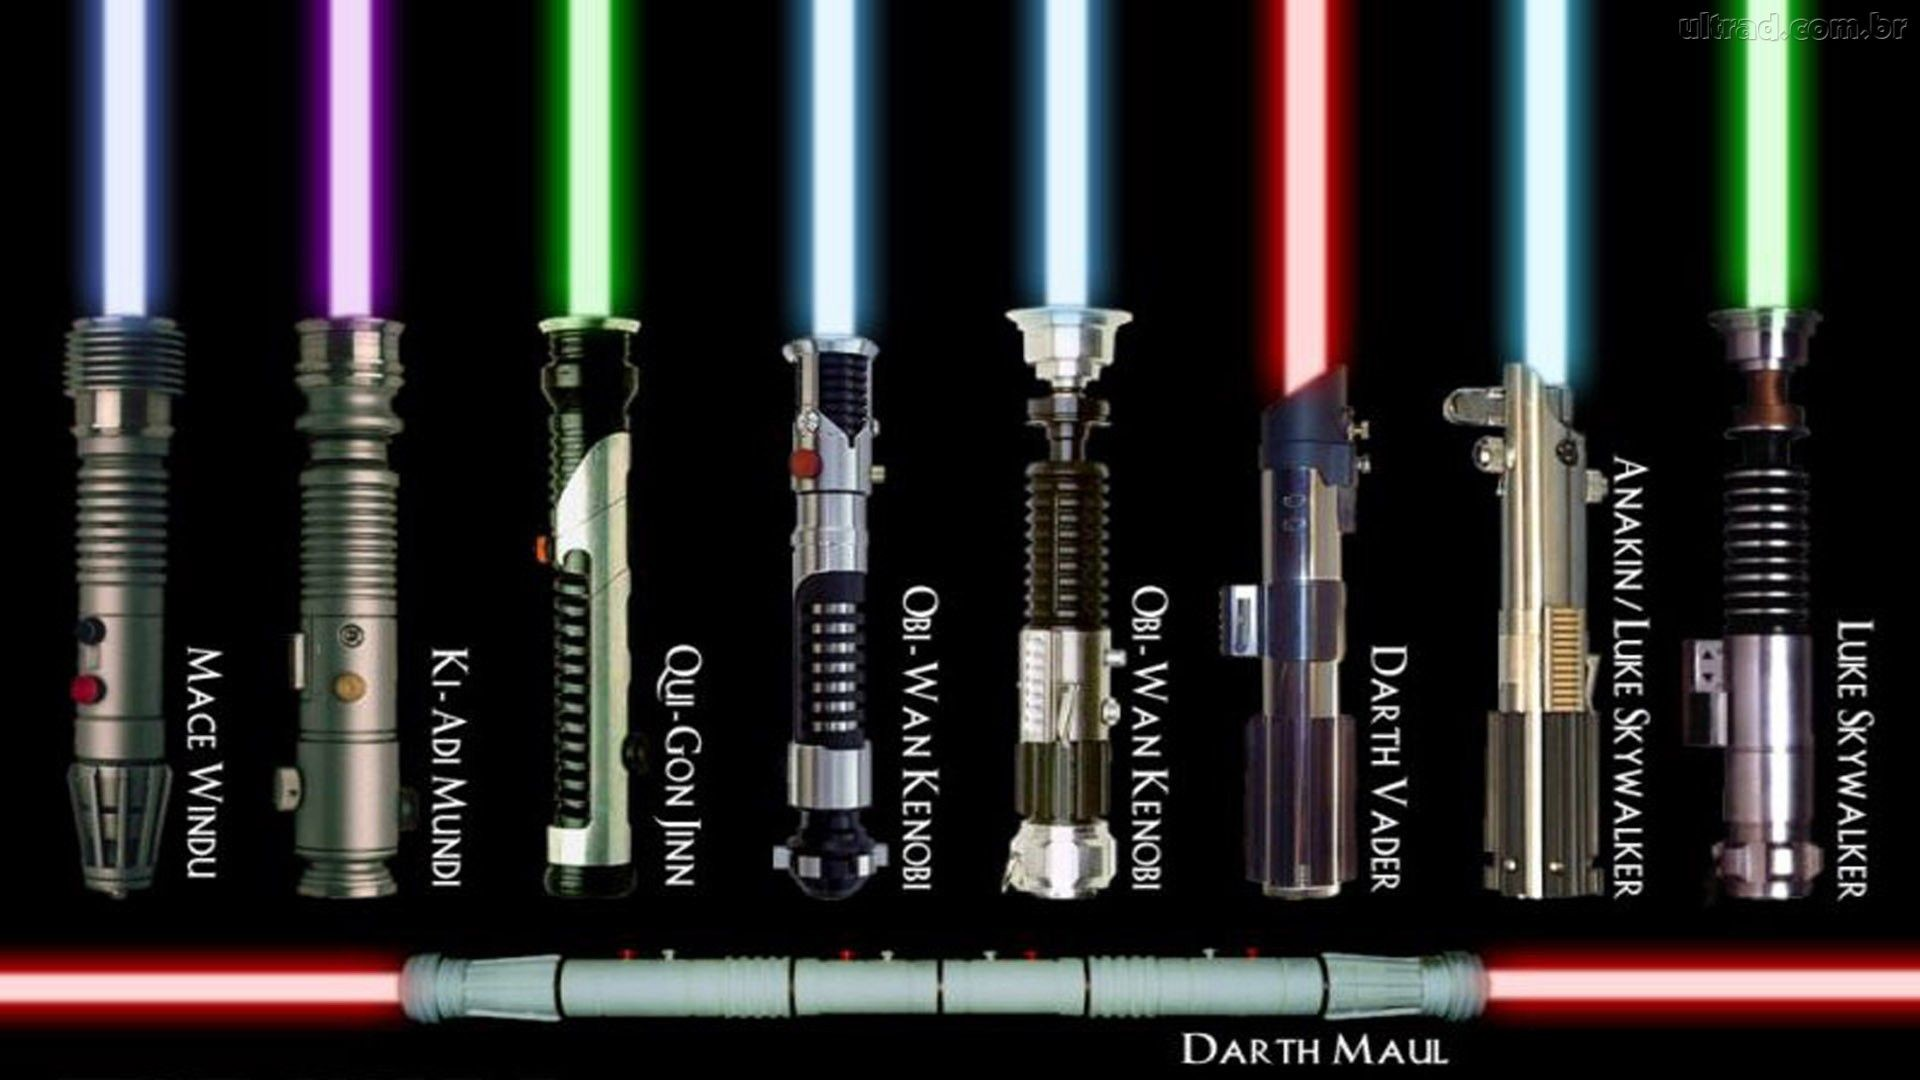 1920x1080 Star Wars Lightsaber, All Lightsabers, Custom Lightsabers, Lightsaber .